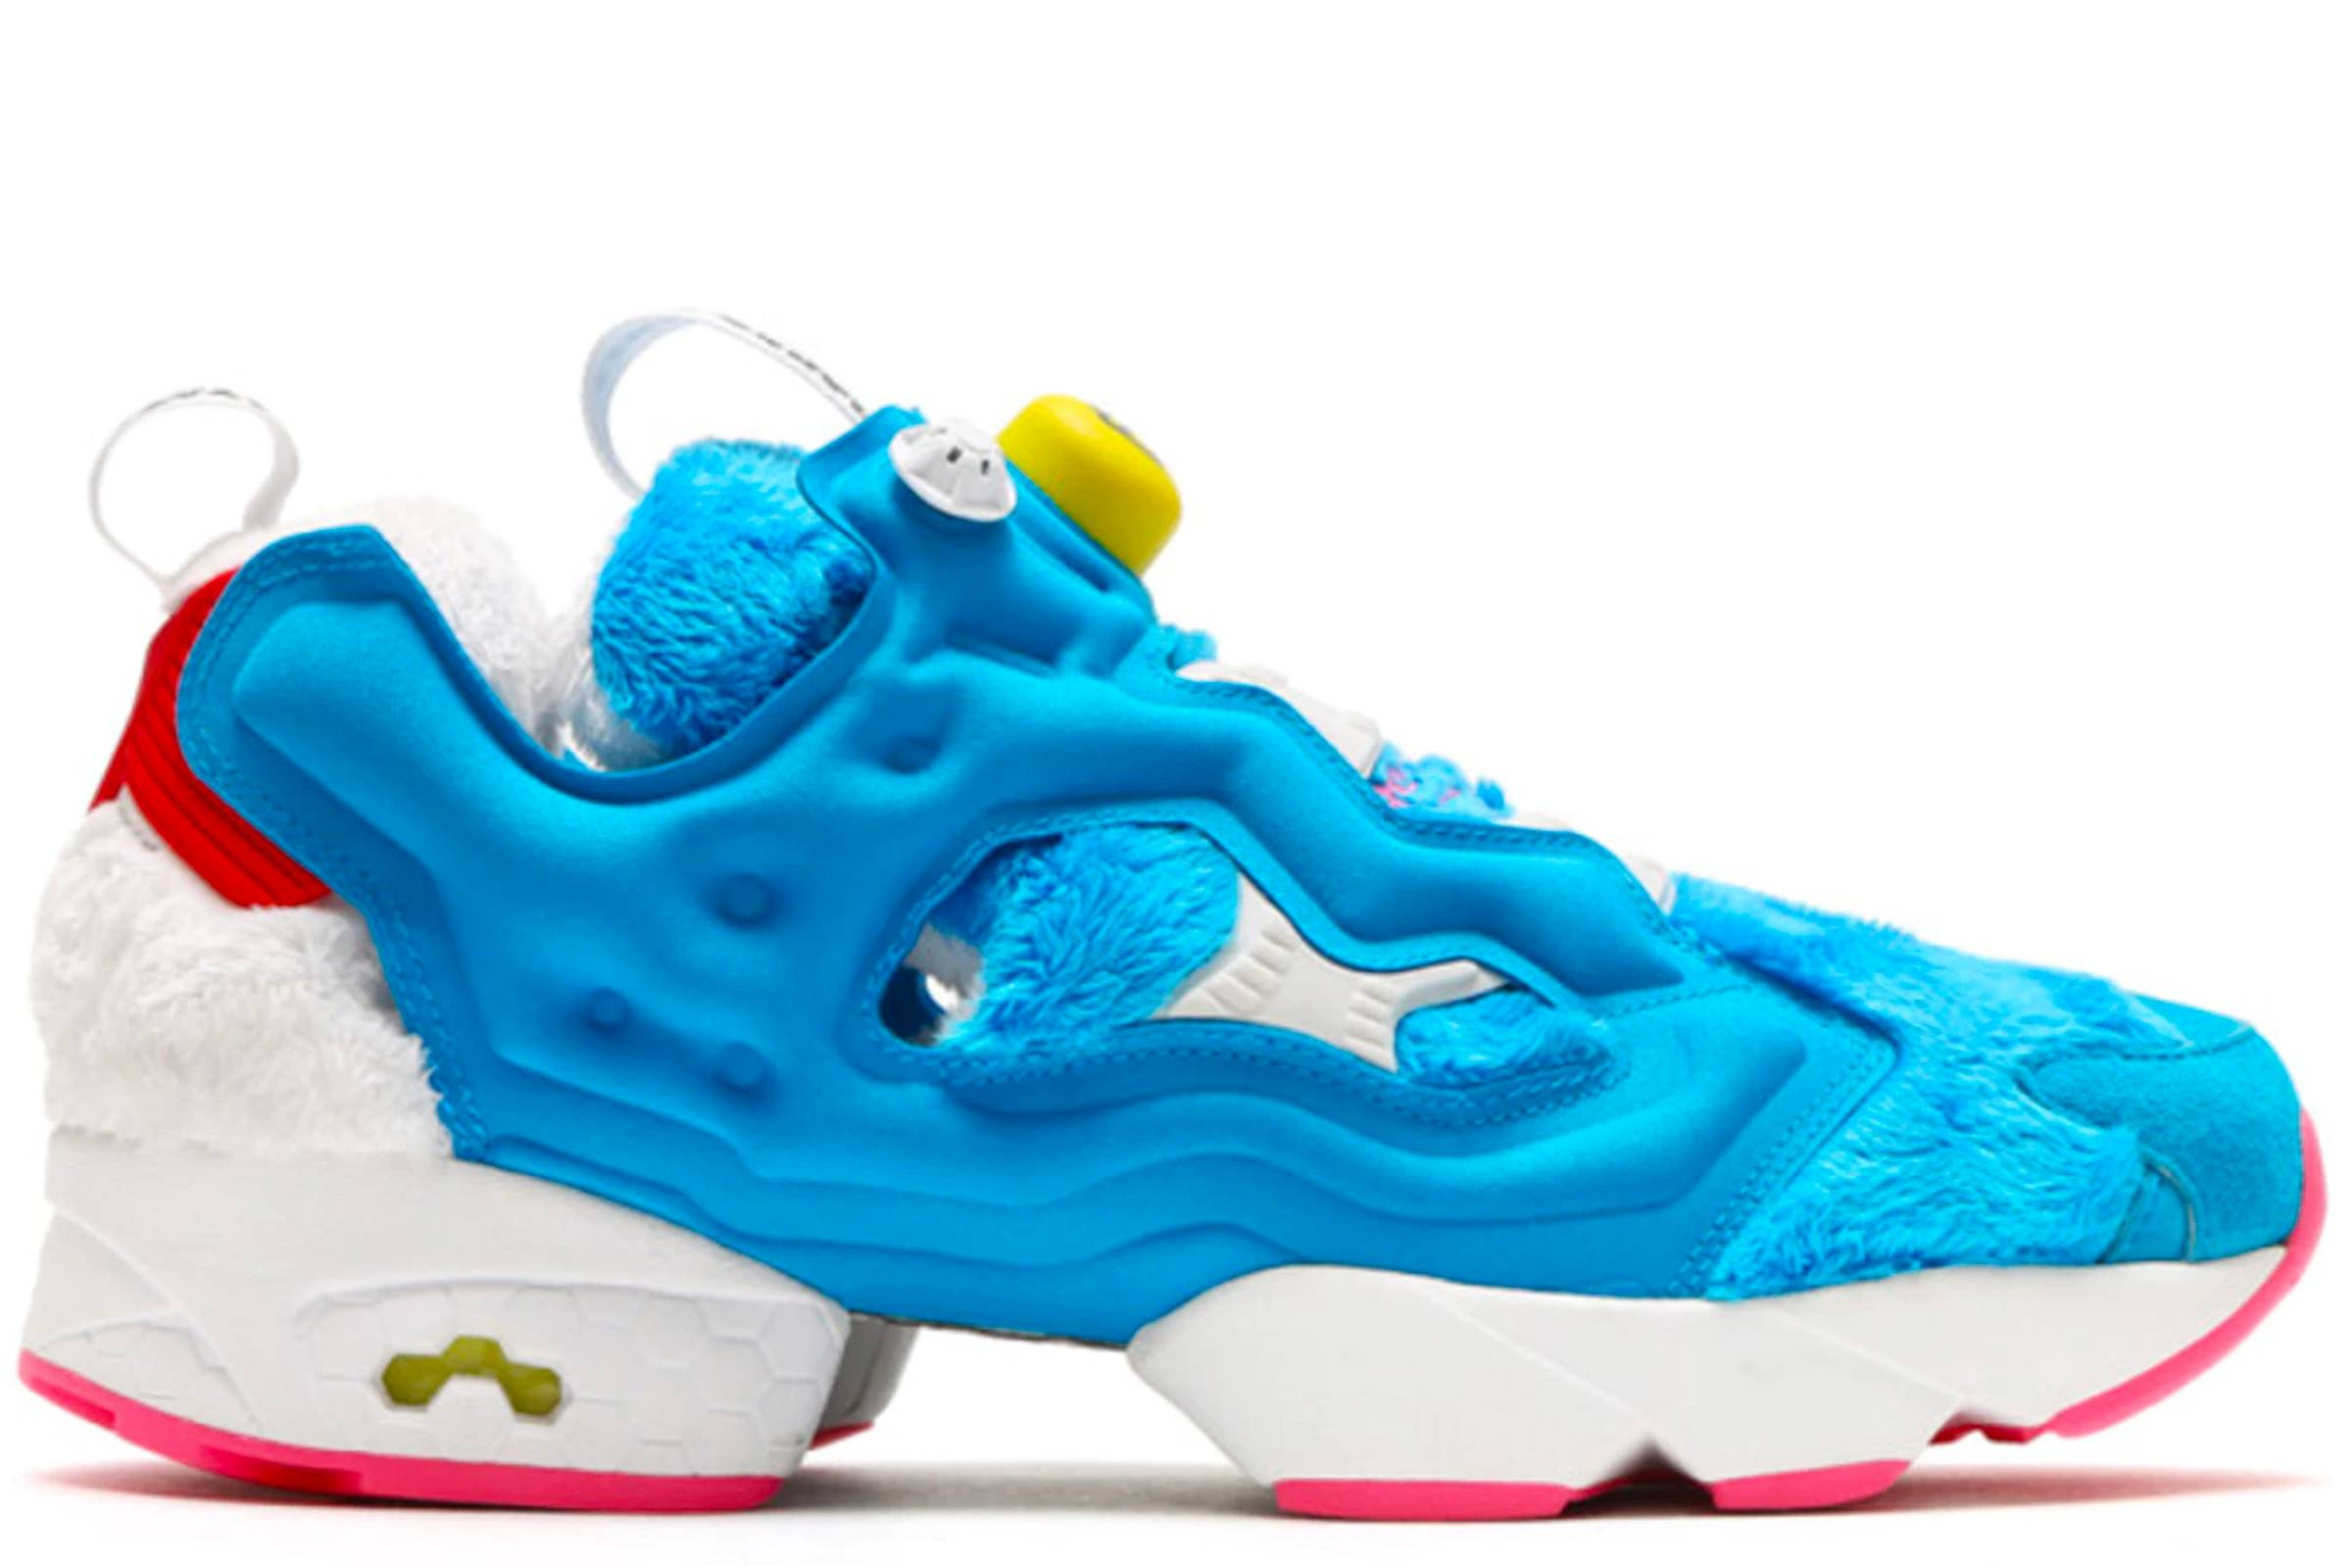 new arrivals 565a0 b324c atmos x Reebok InstaPump Fury Doraemon. In 2008, the retailer famously teamed  up ...